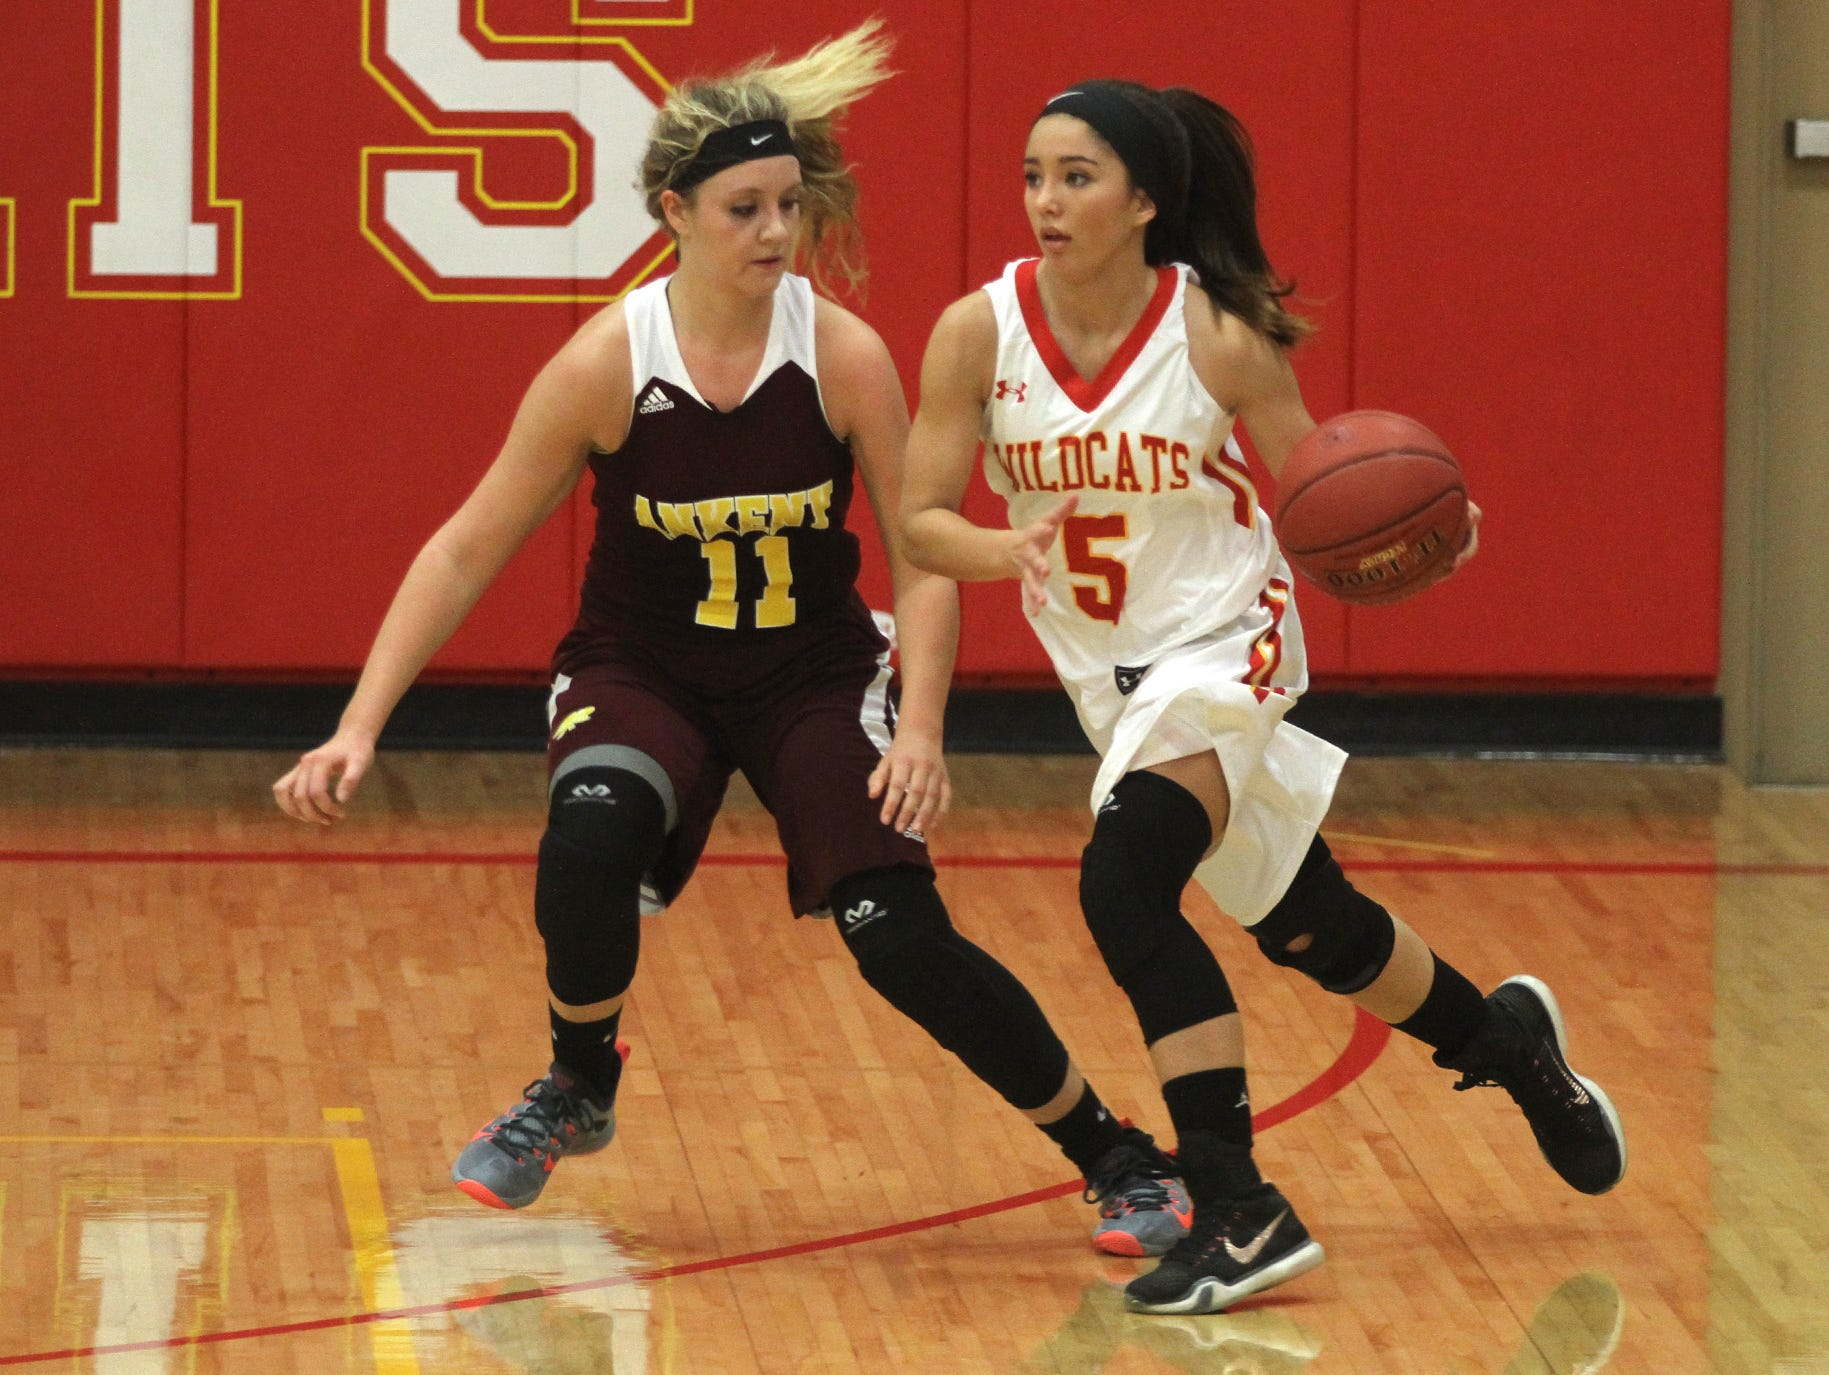 Ankeny junior Codee Myers defends against Carlisle sophomore Amber Kettering. Class 4A 15th-ranked Carlisle beat Ankeny 57-44 in the Wildcats' home opener on Nov. 24.